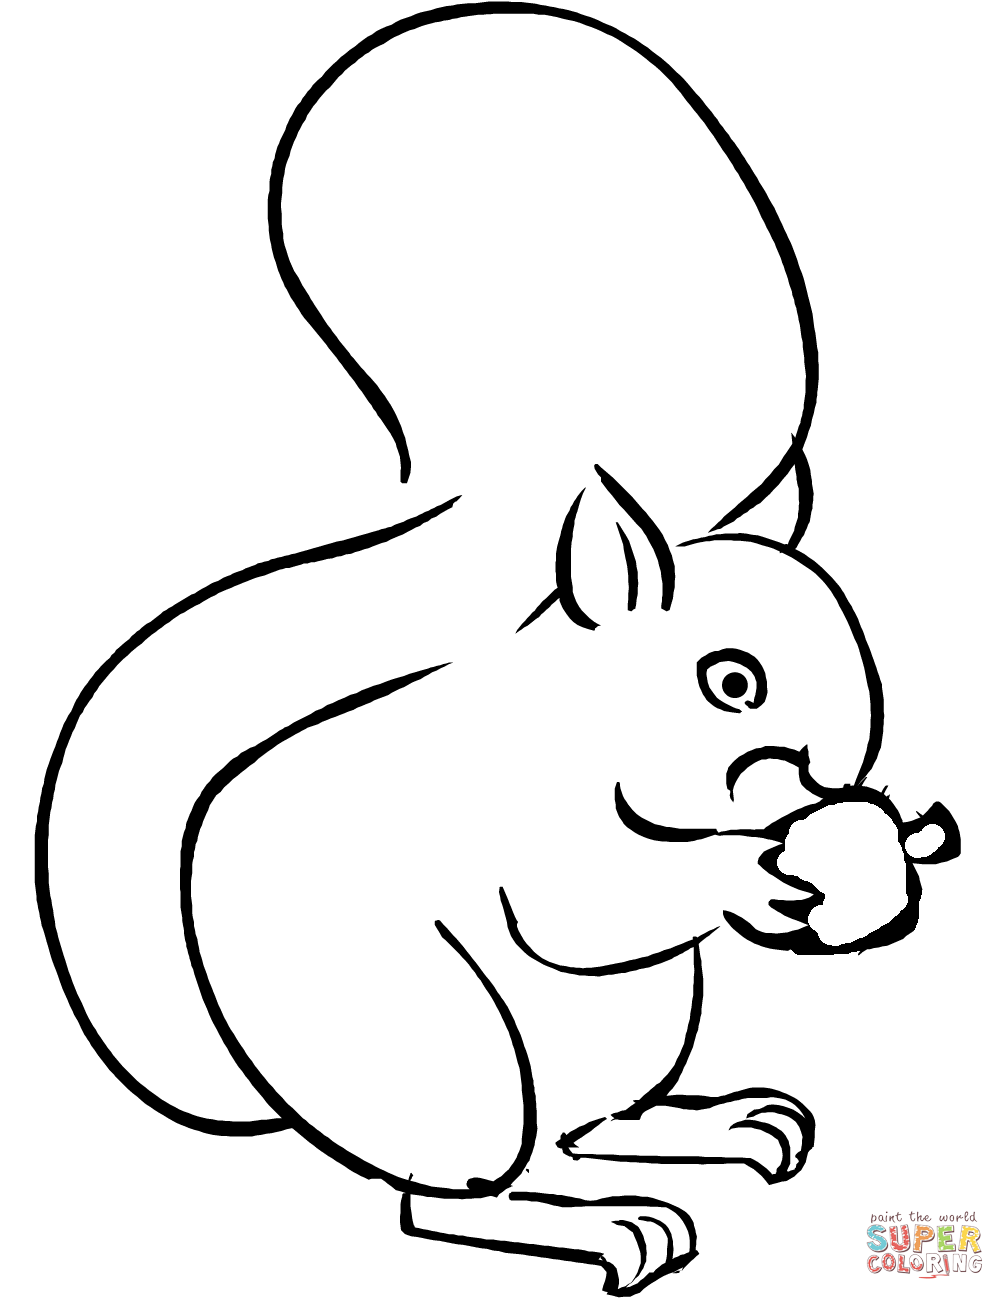 1005x1300 Image Result For Squirrel Drawing Squirrel Squirrel